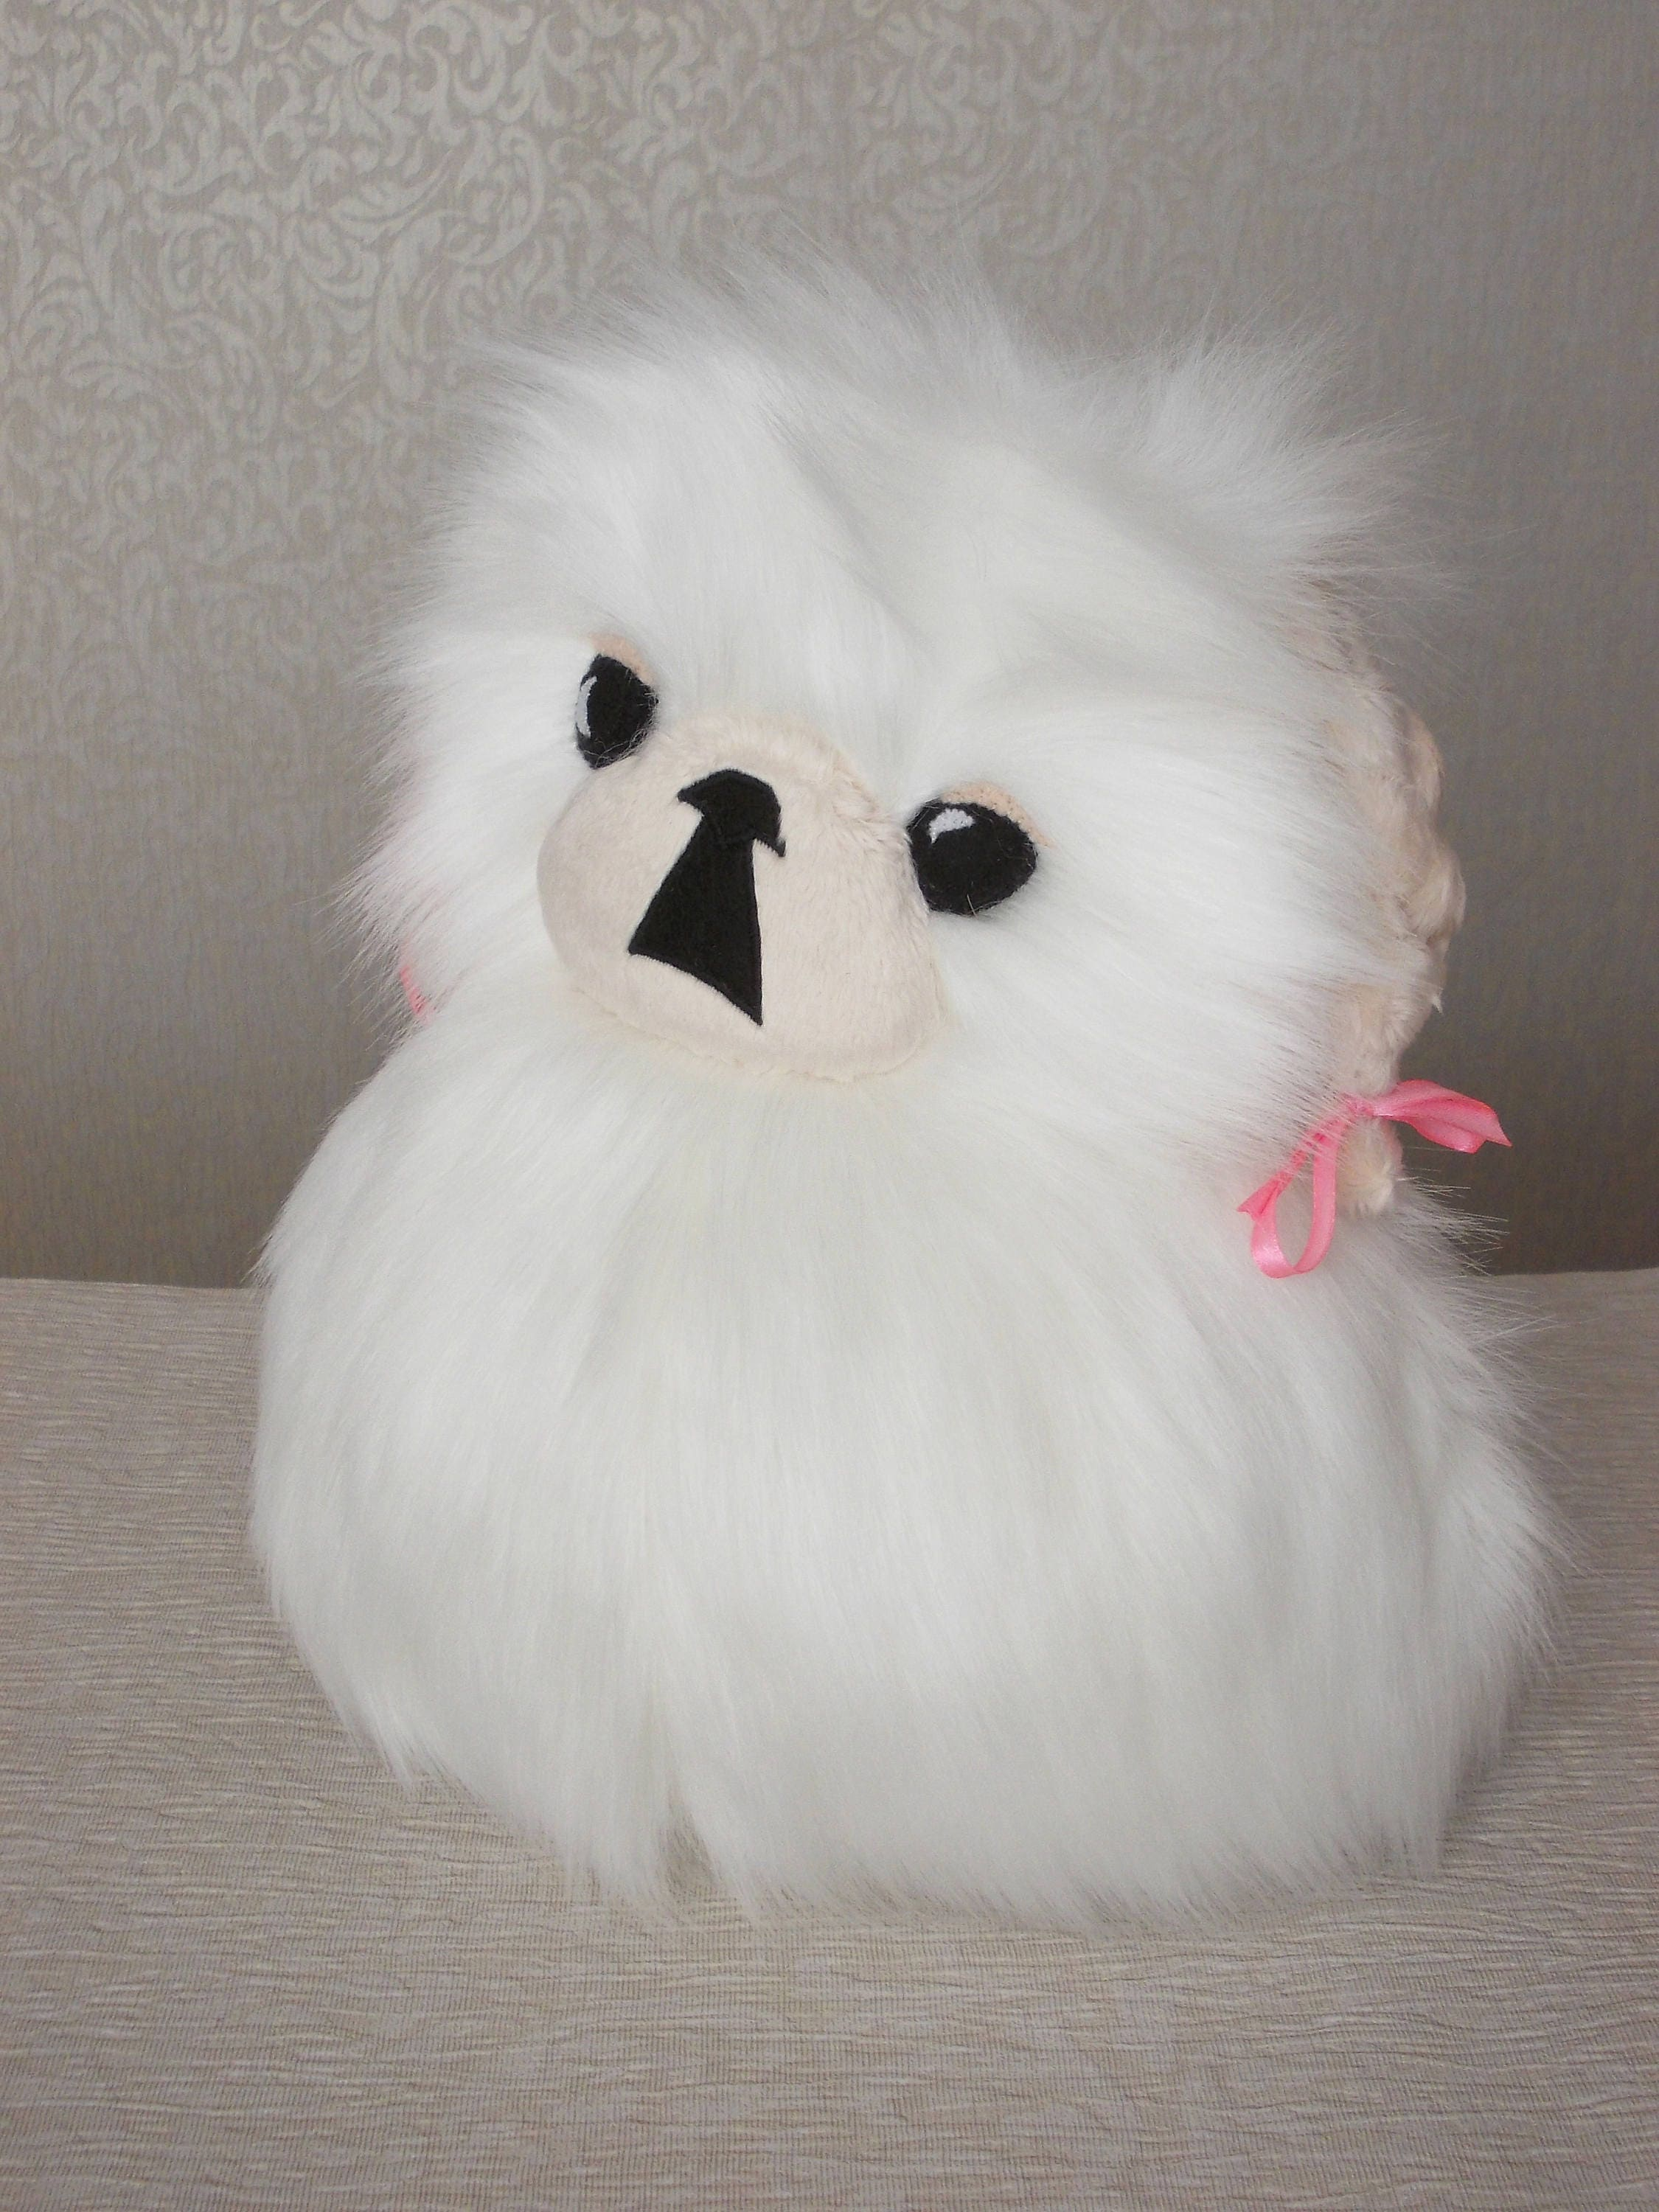 Pekingese Pekingese Dog Stuffed Animal Stuffed Dog Dog Etsy